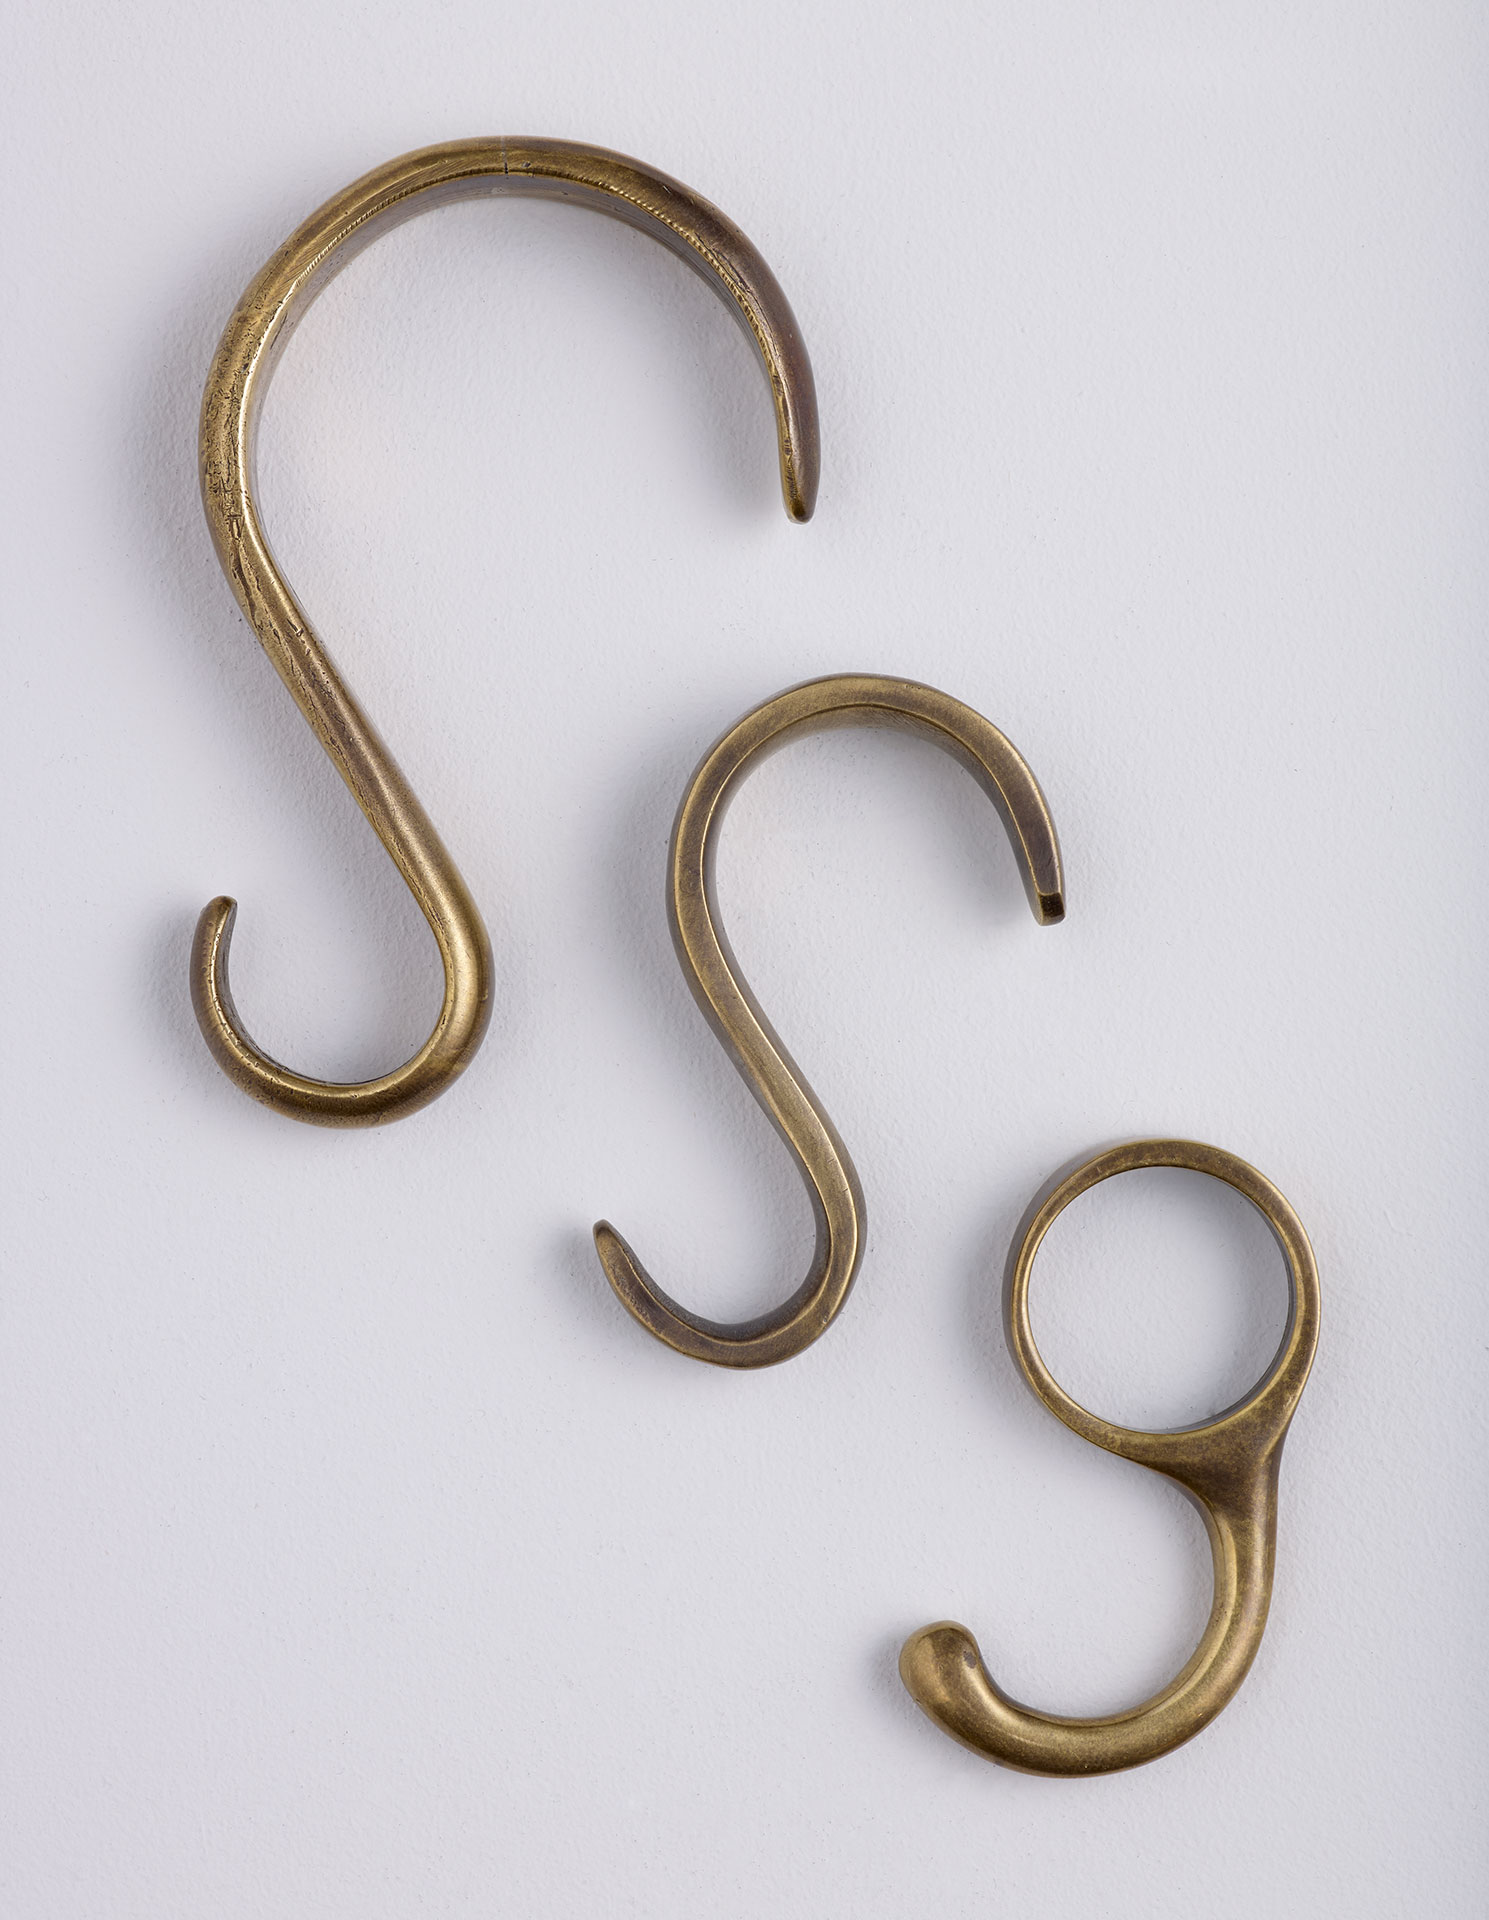 brass s hooks for picture hanging